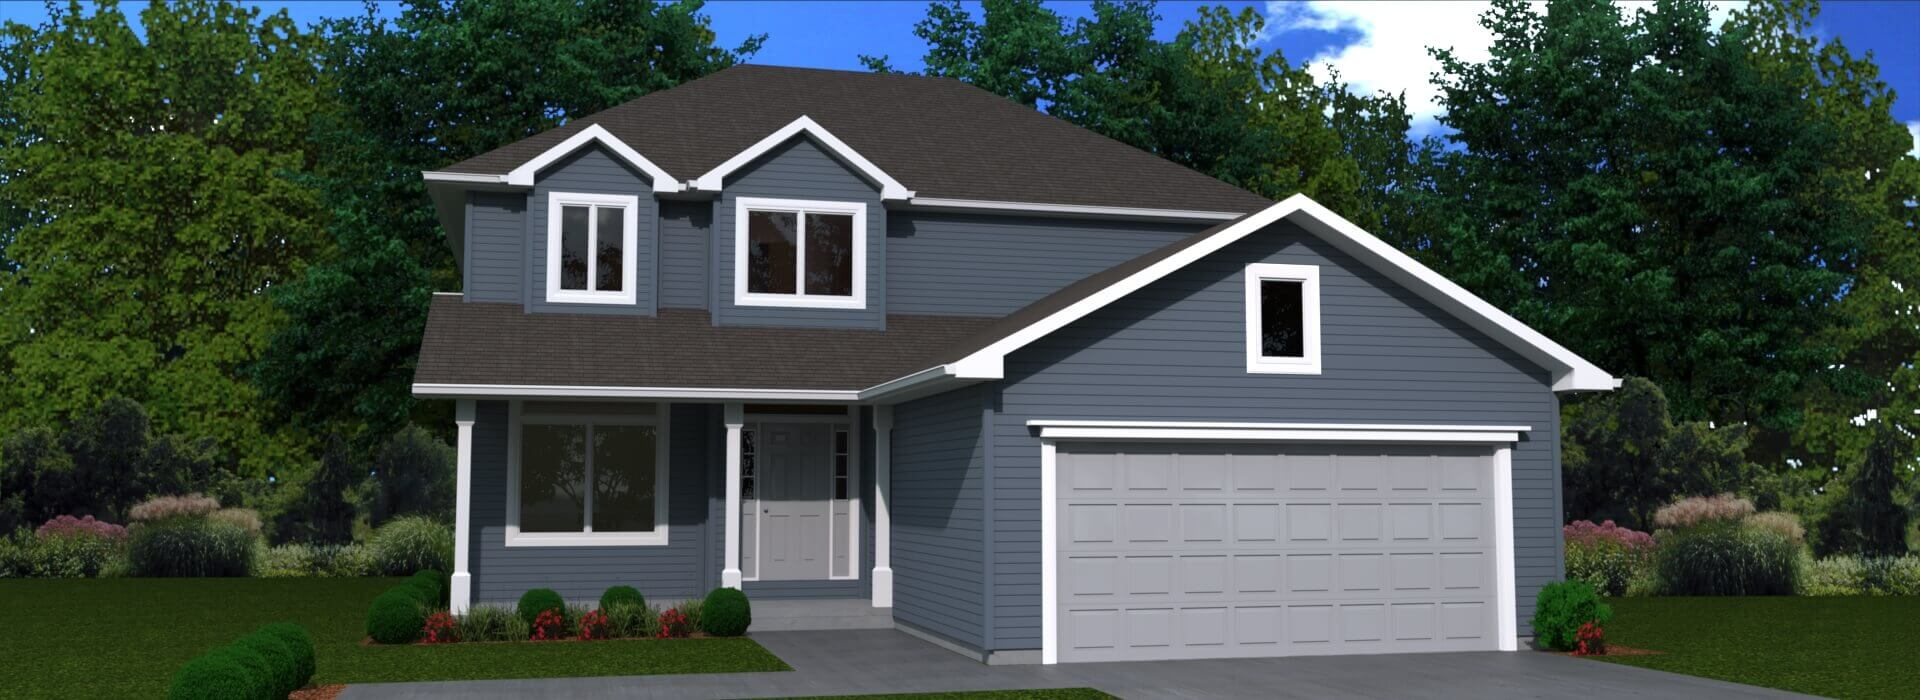 1812 sq.ft. timber mart house 3 bed 2.5 bath exterior floor plan